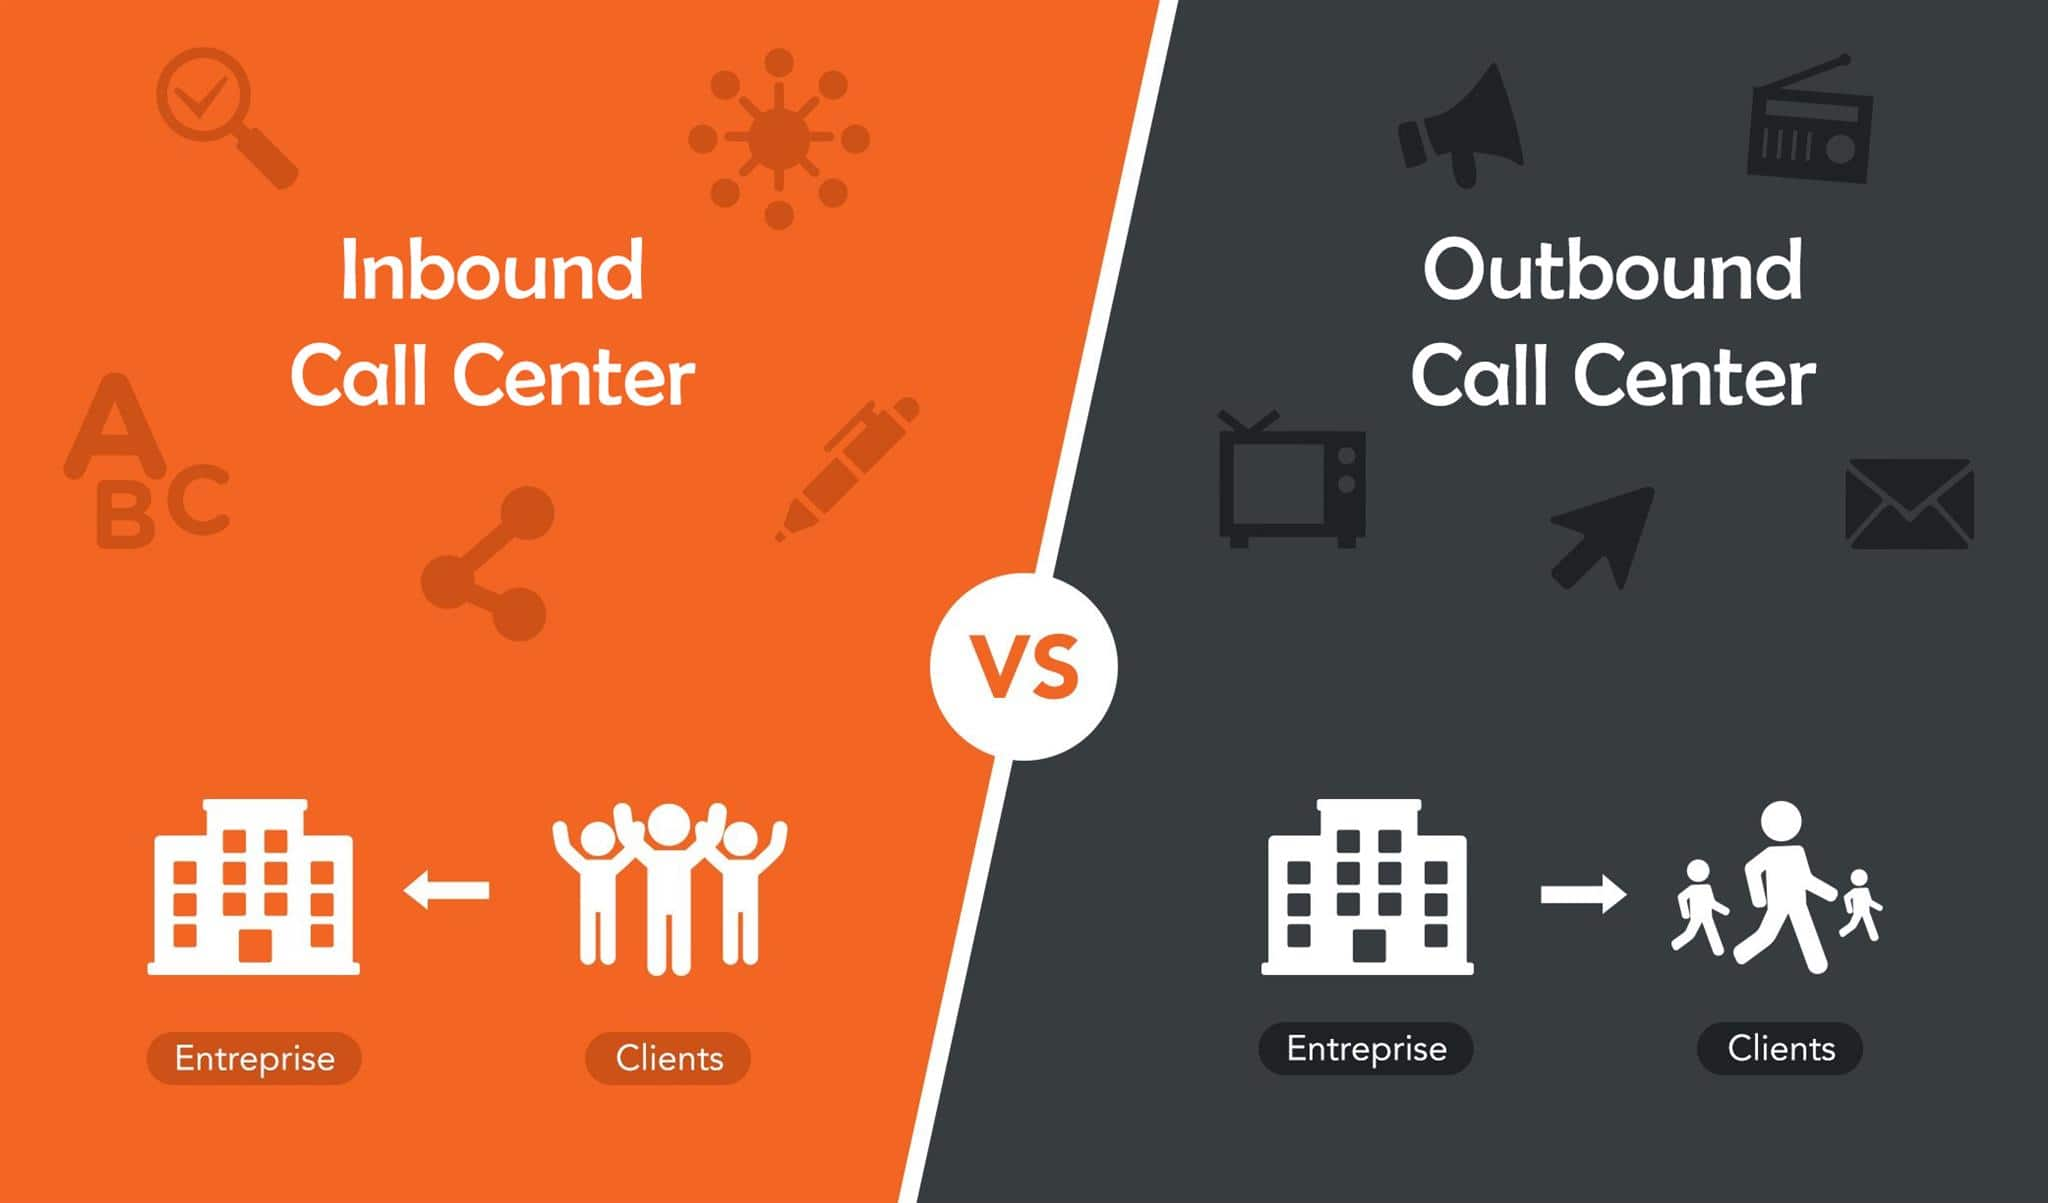 Inbound Call Center Vs Outbound Call Center in Pakistan